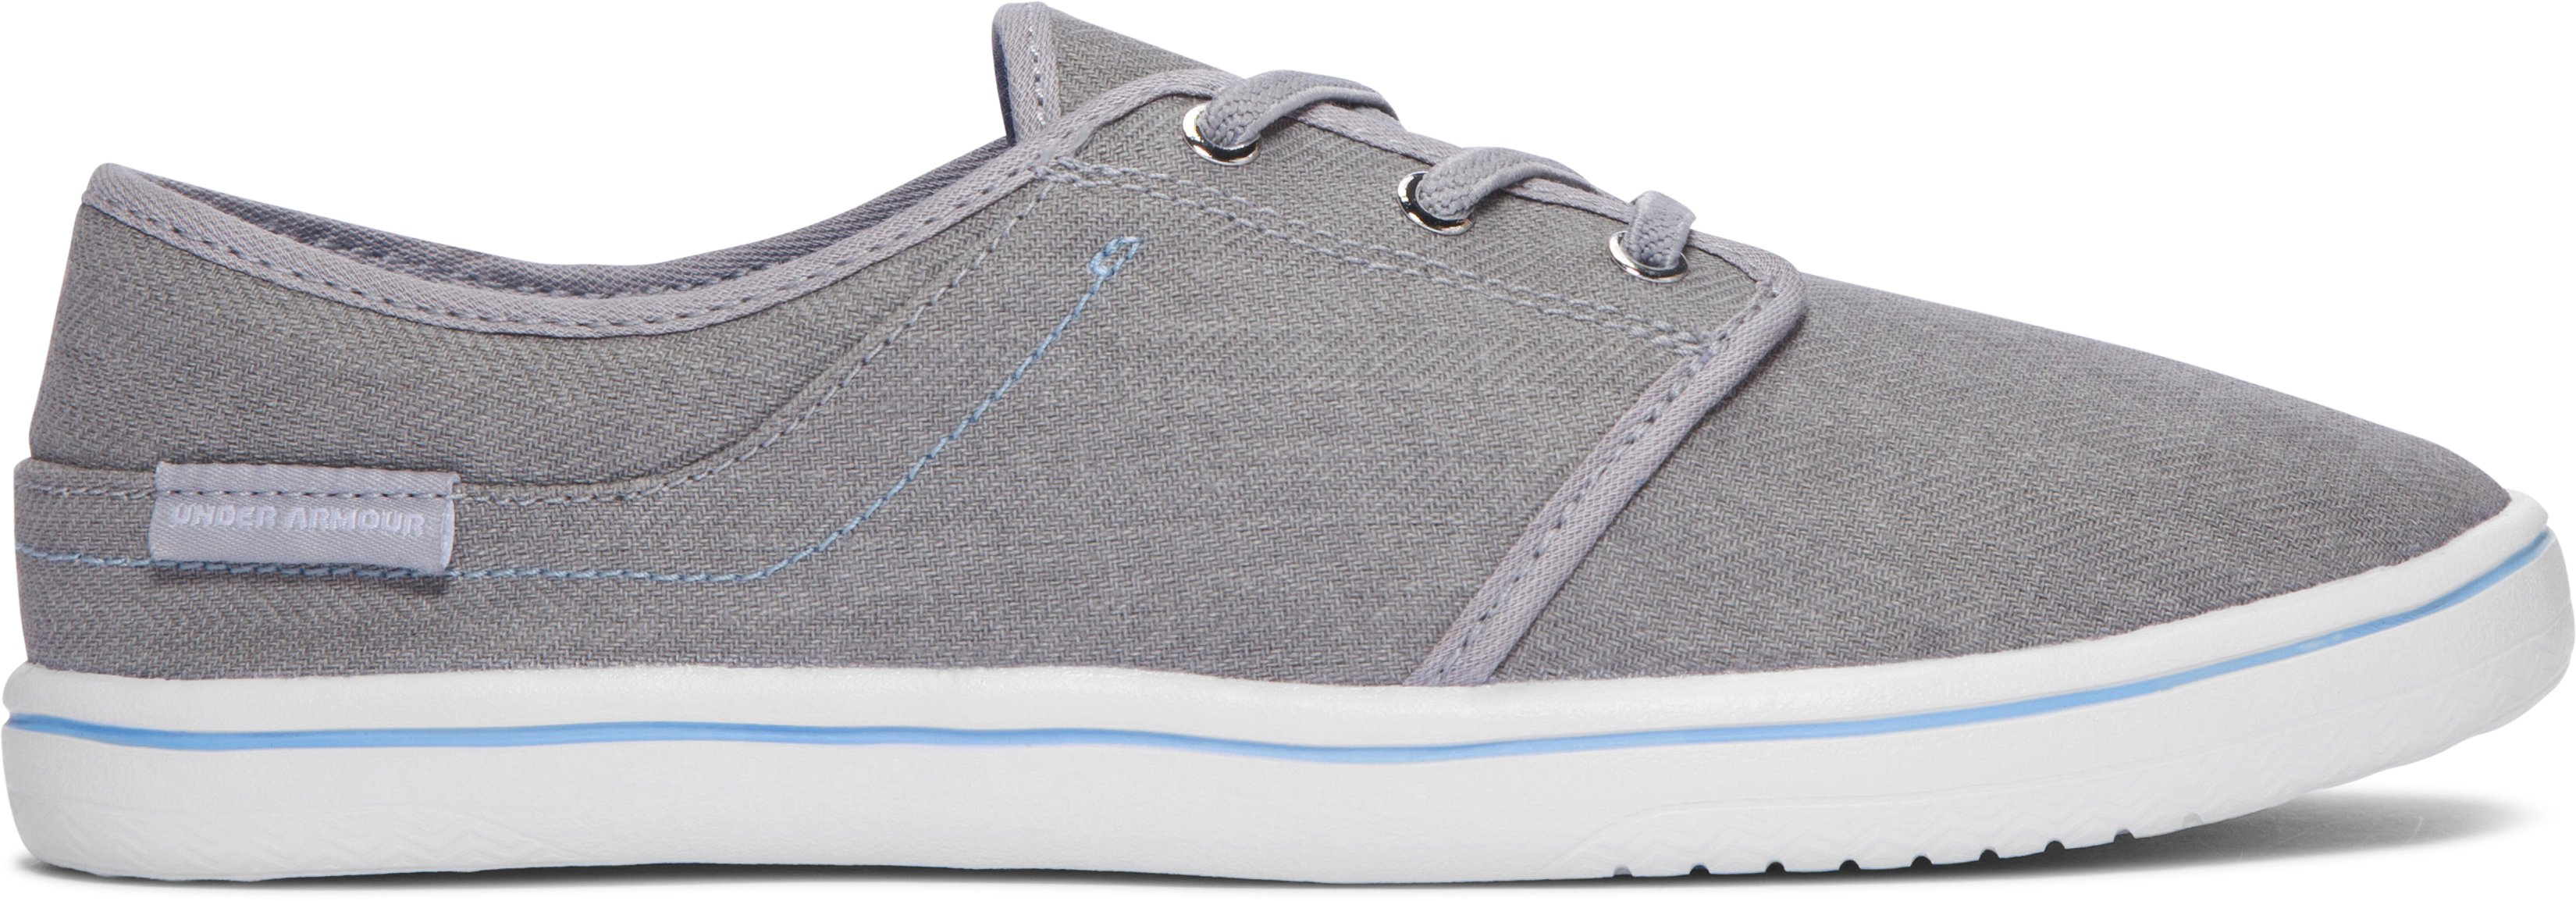 gray wolf shoes Women's UA Street Encounter Shoes The <strong>grey</strong> pair is just okay.